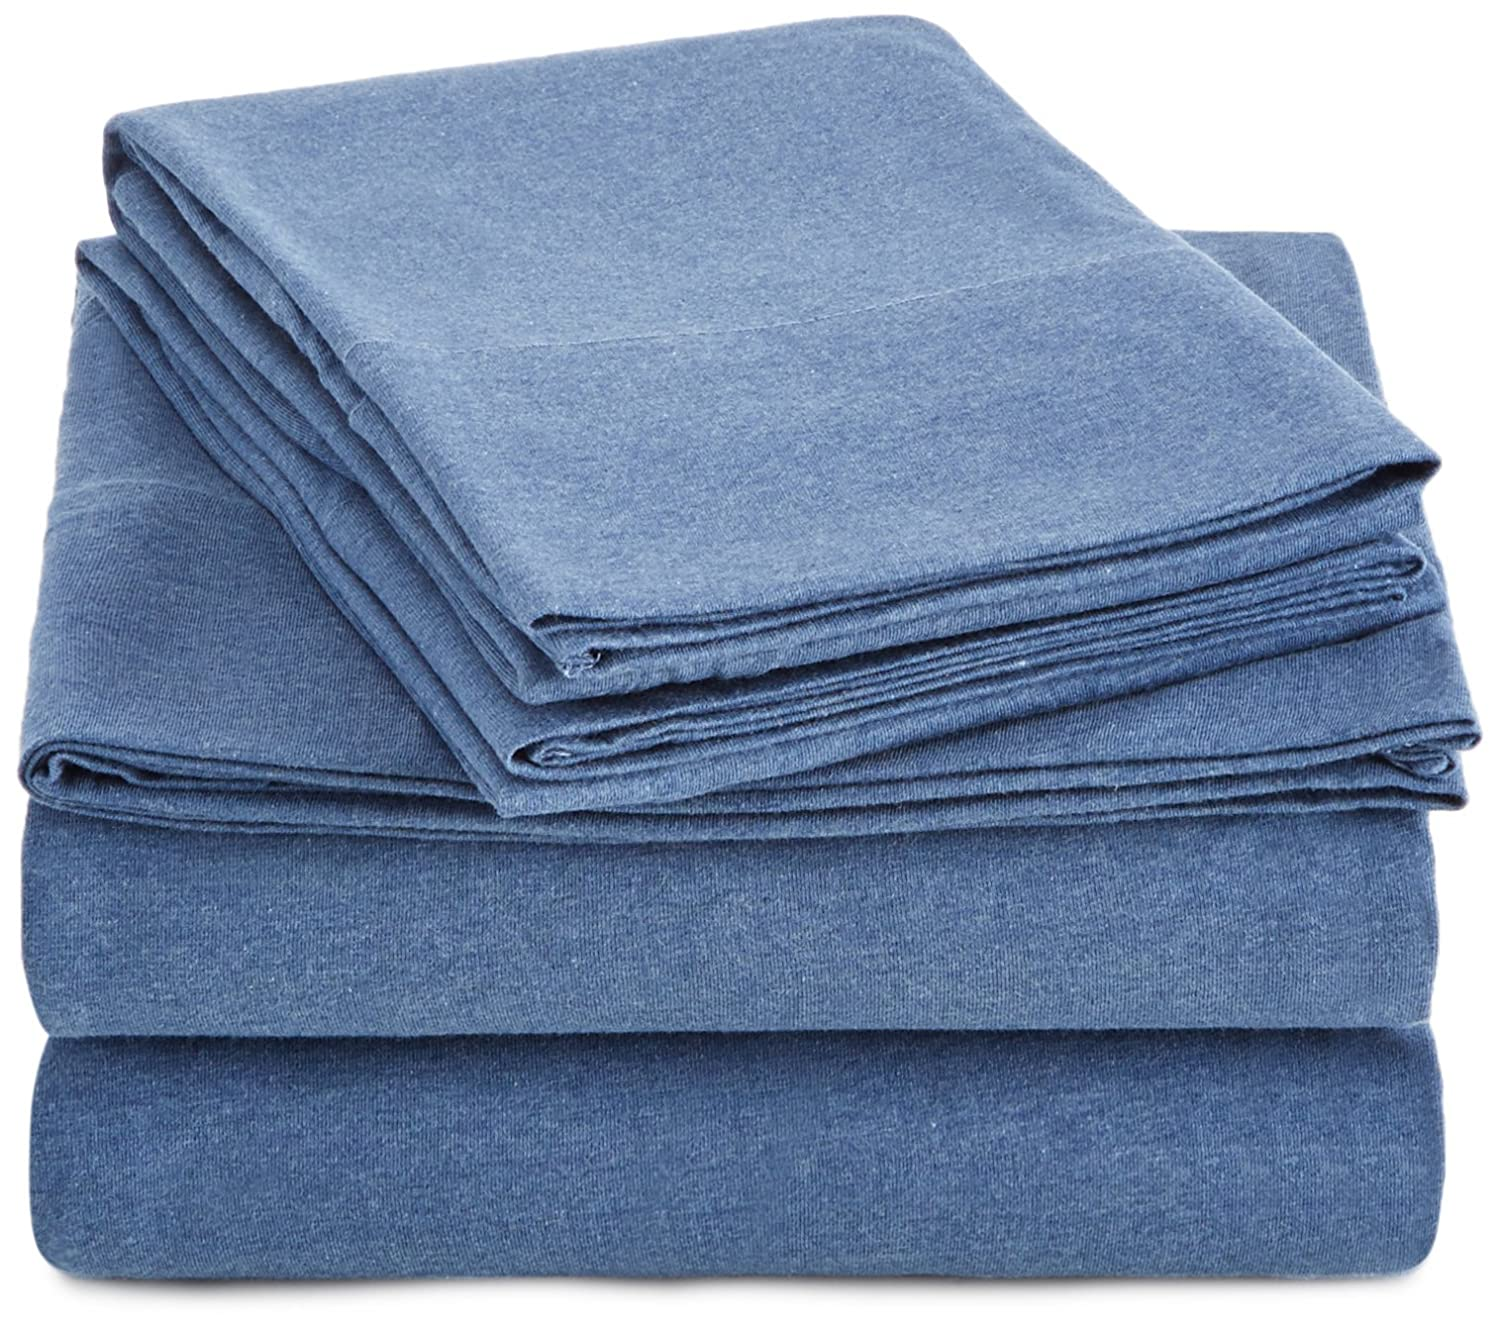 AmazonBasics Heather Jersey Sheet Set - Twin, Chambray JR-SS-CHABY-TW